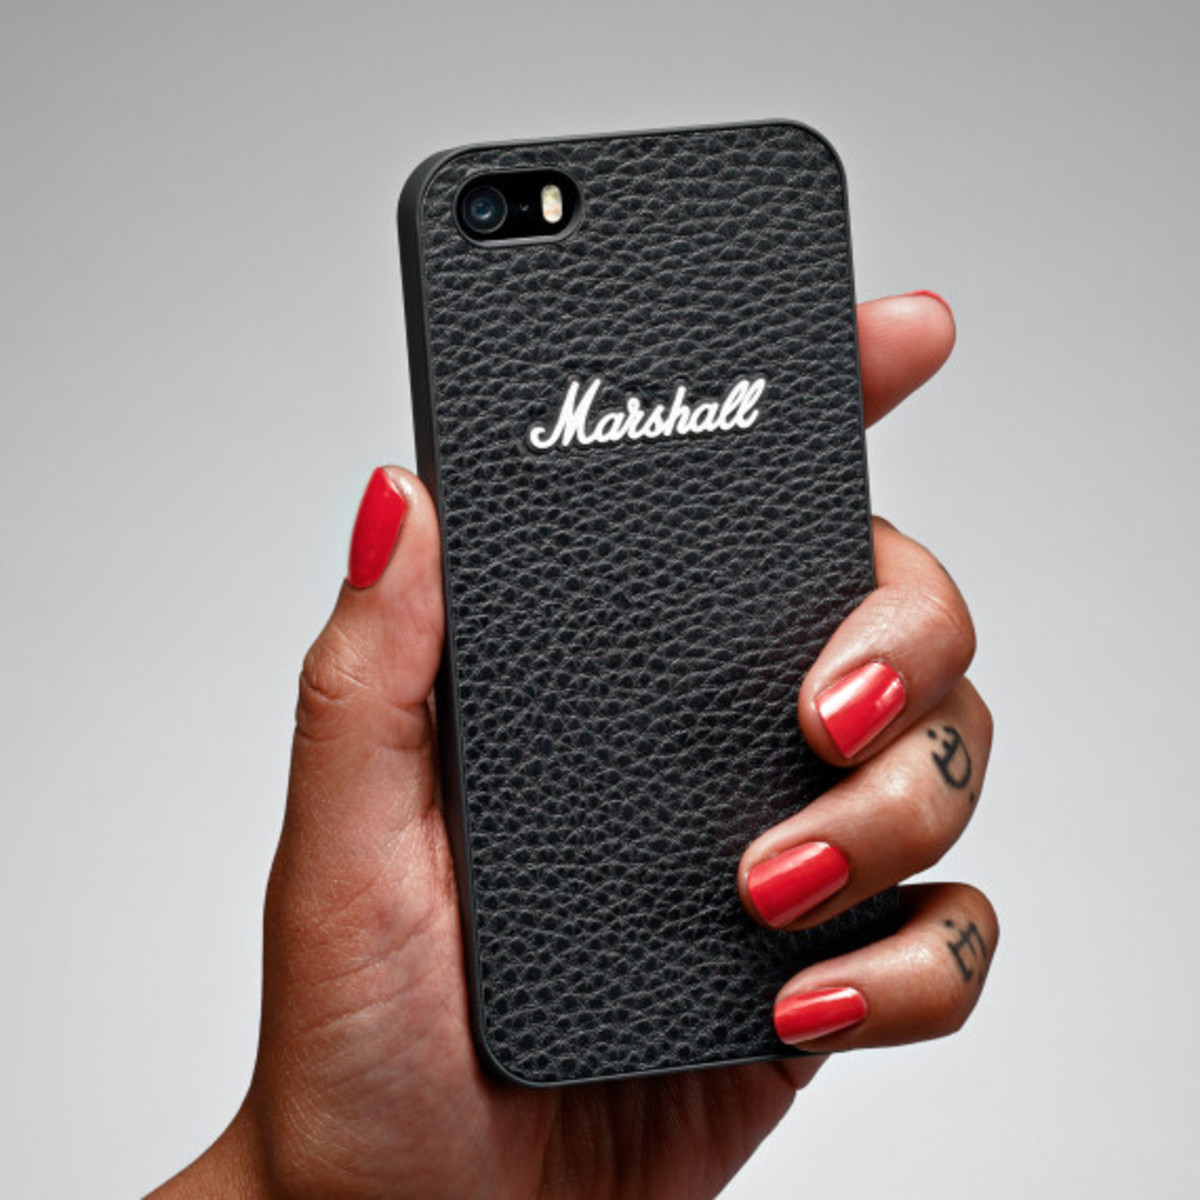 Marshall Phone Case - For Apple iPhone 5/5S & Samsung Galaxy S4 - 0